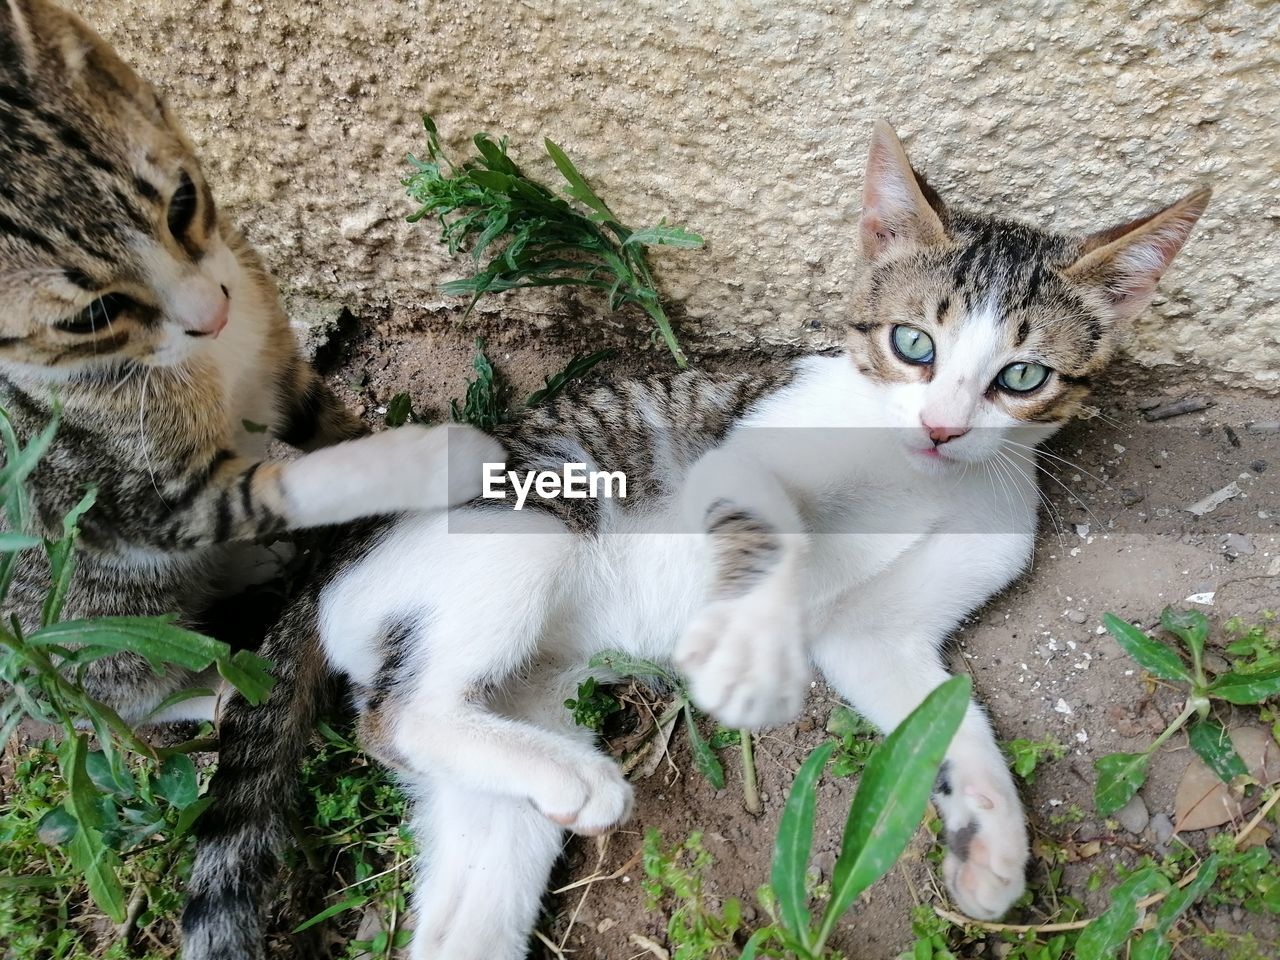 cat, feline, domestic cat, mammal, pets, domestic, vertebrate, animal, domestic animals, animal themes, group of animals, portrait, plant, looking at camera, plant part, no people, leaf, relaxation, young animal, nature, kitten, whisker